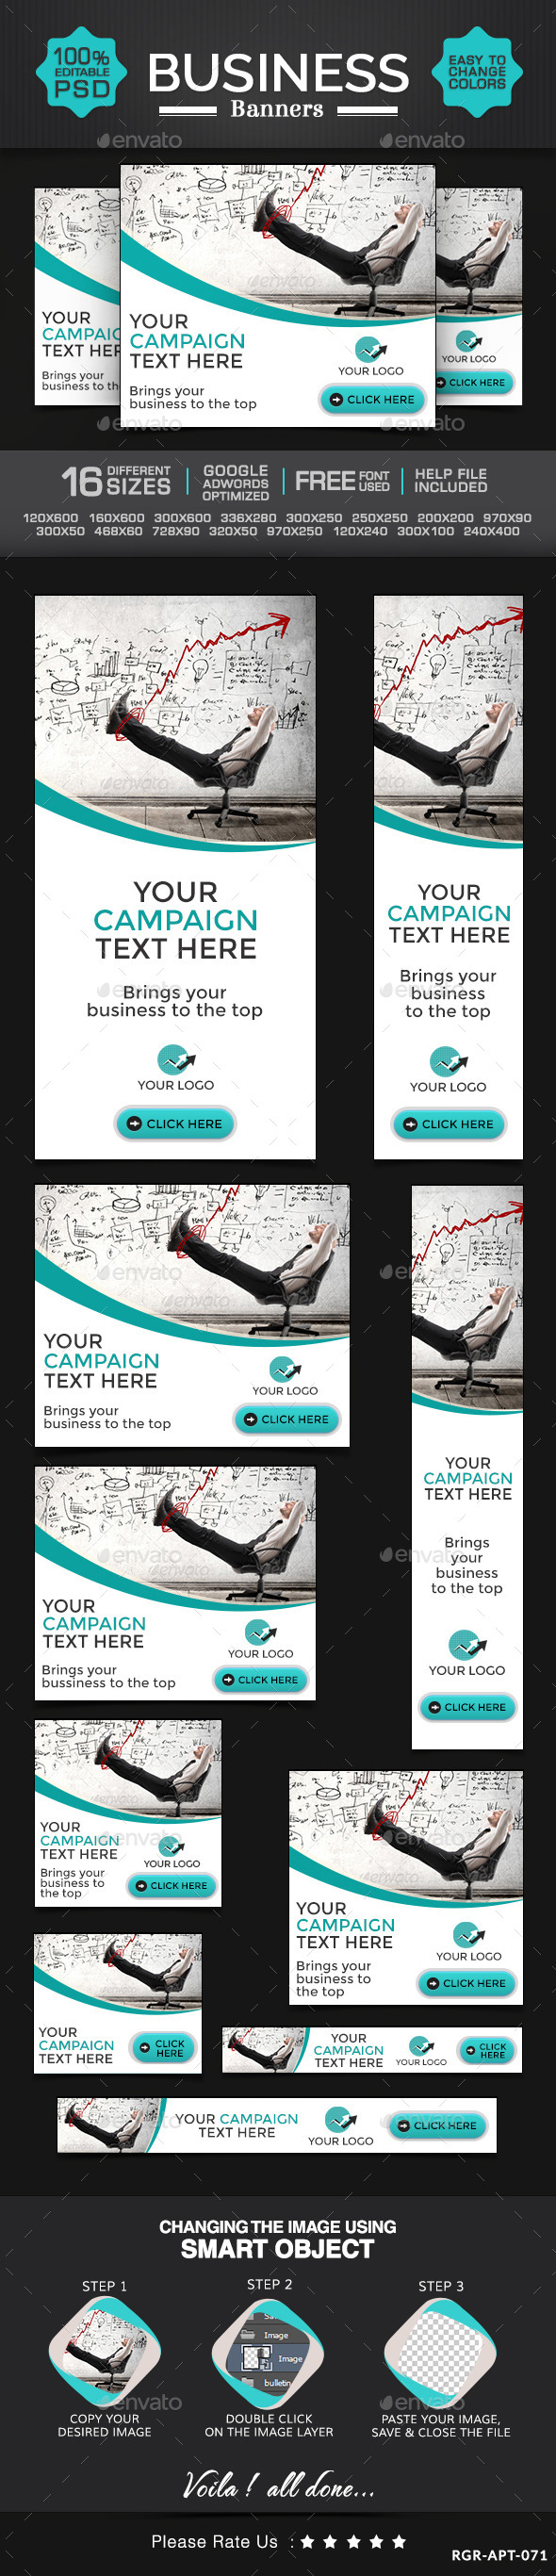 Business & Marketing Banners - Banners & Ads Web Elements